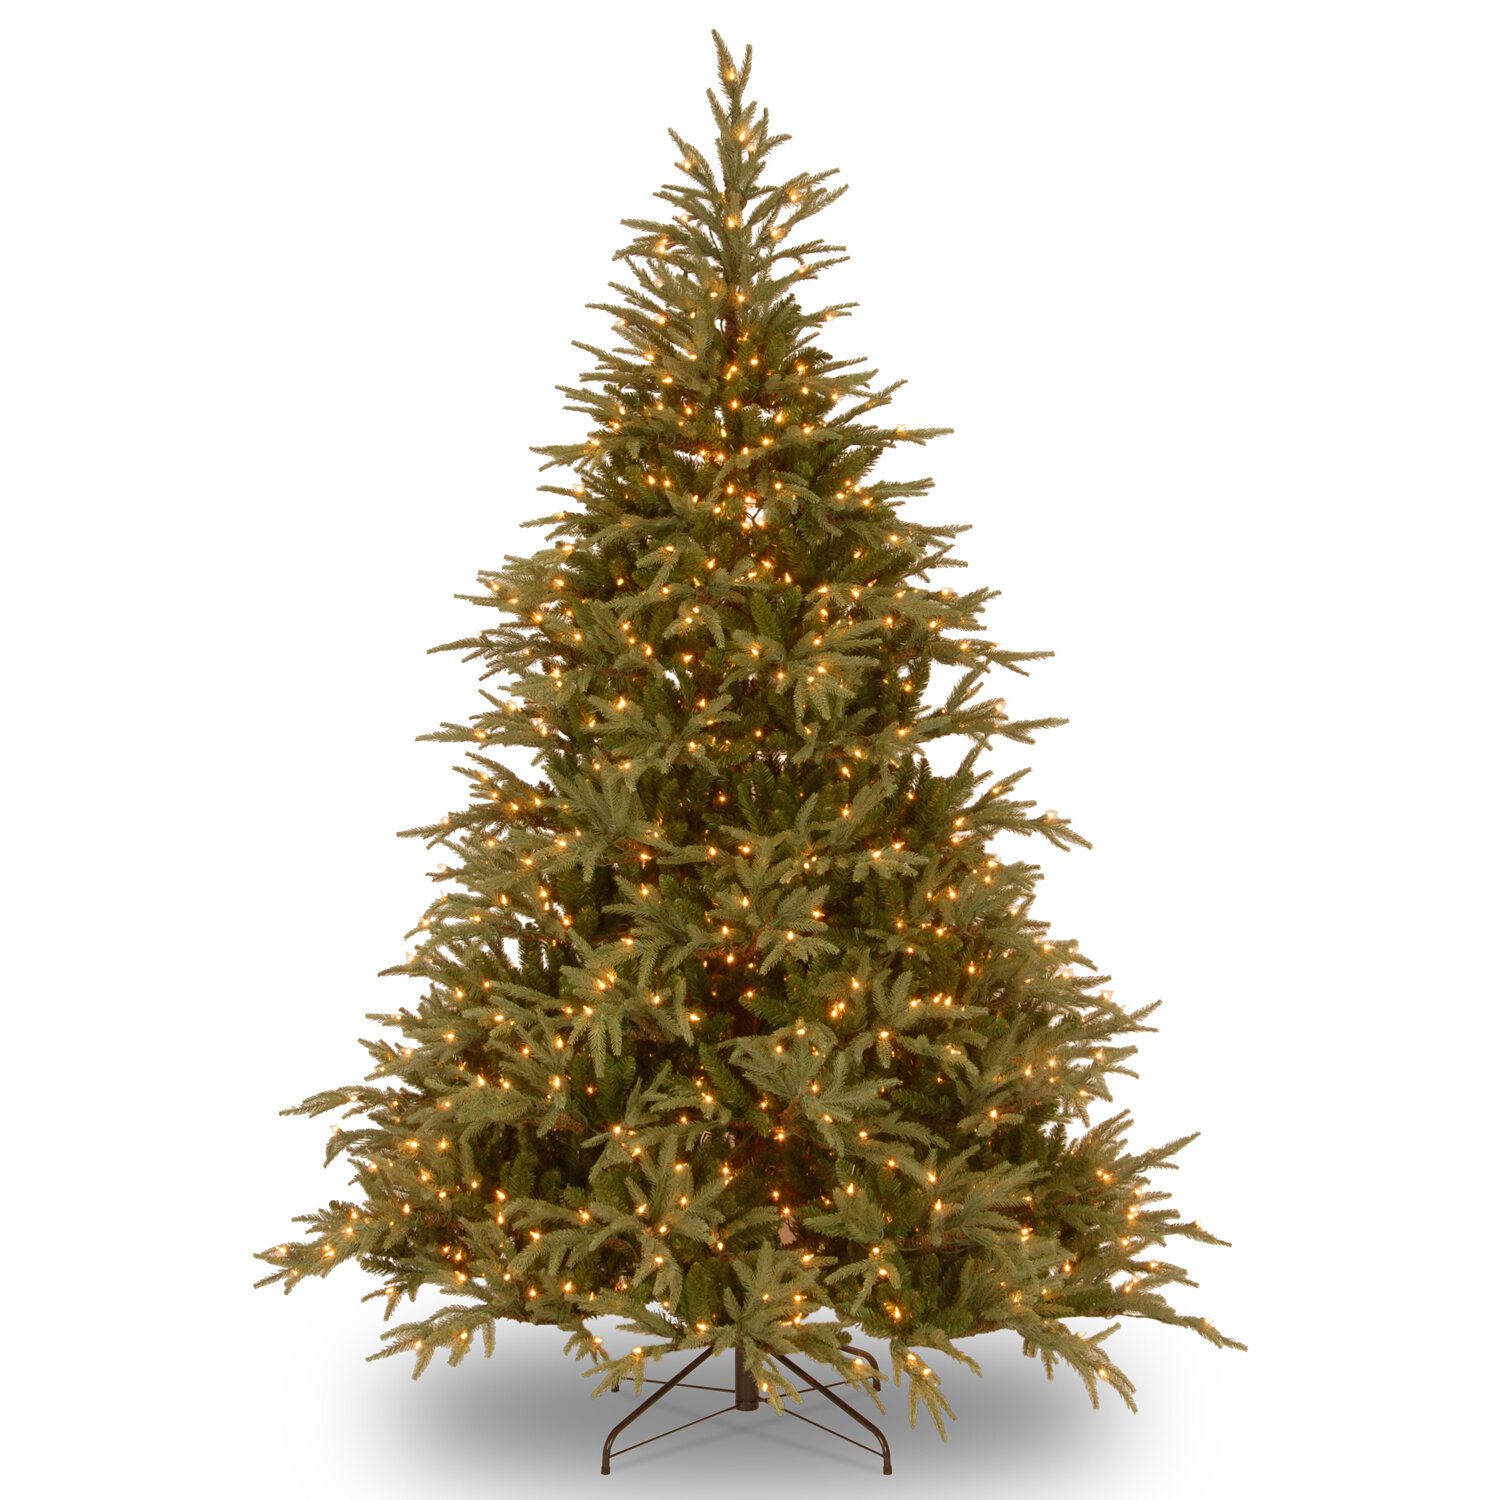 Artificial Christmas Tree Branches.108 Green Fir Artificial Christmas Tree With 1500 Clear White Lights With Stand